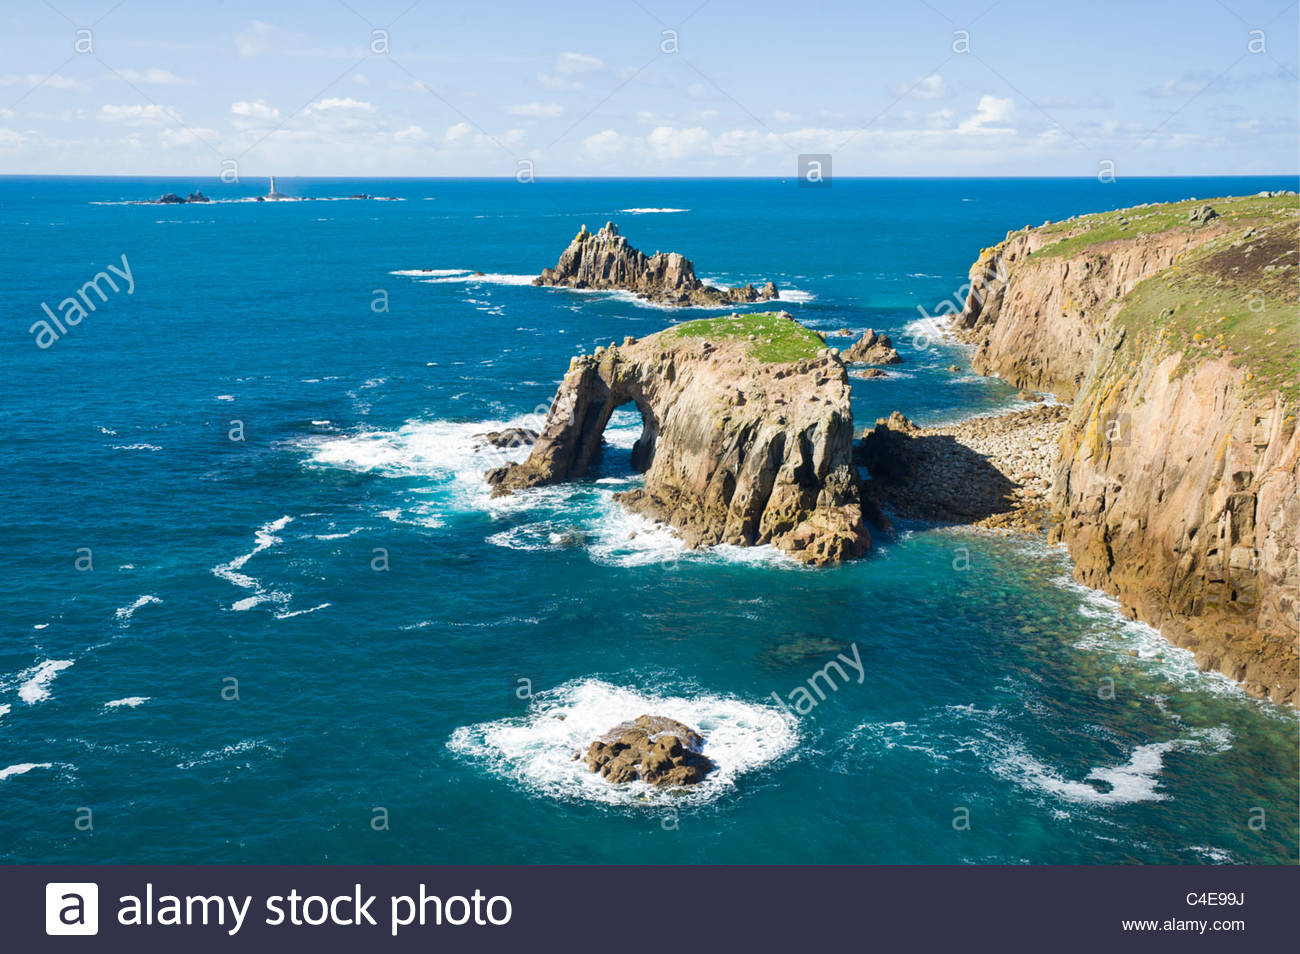 Enys Dodman, The Armed Knight, and the Longships lighthouse at Land's End, Cornwall, England. - Stock Image